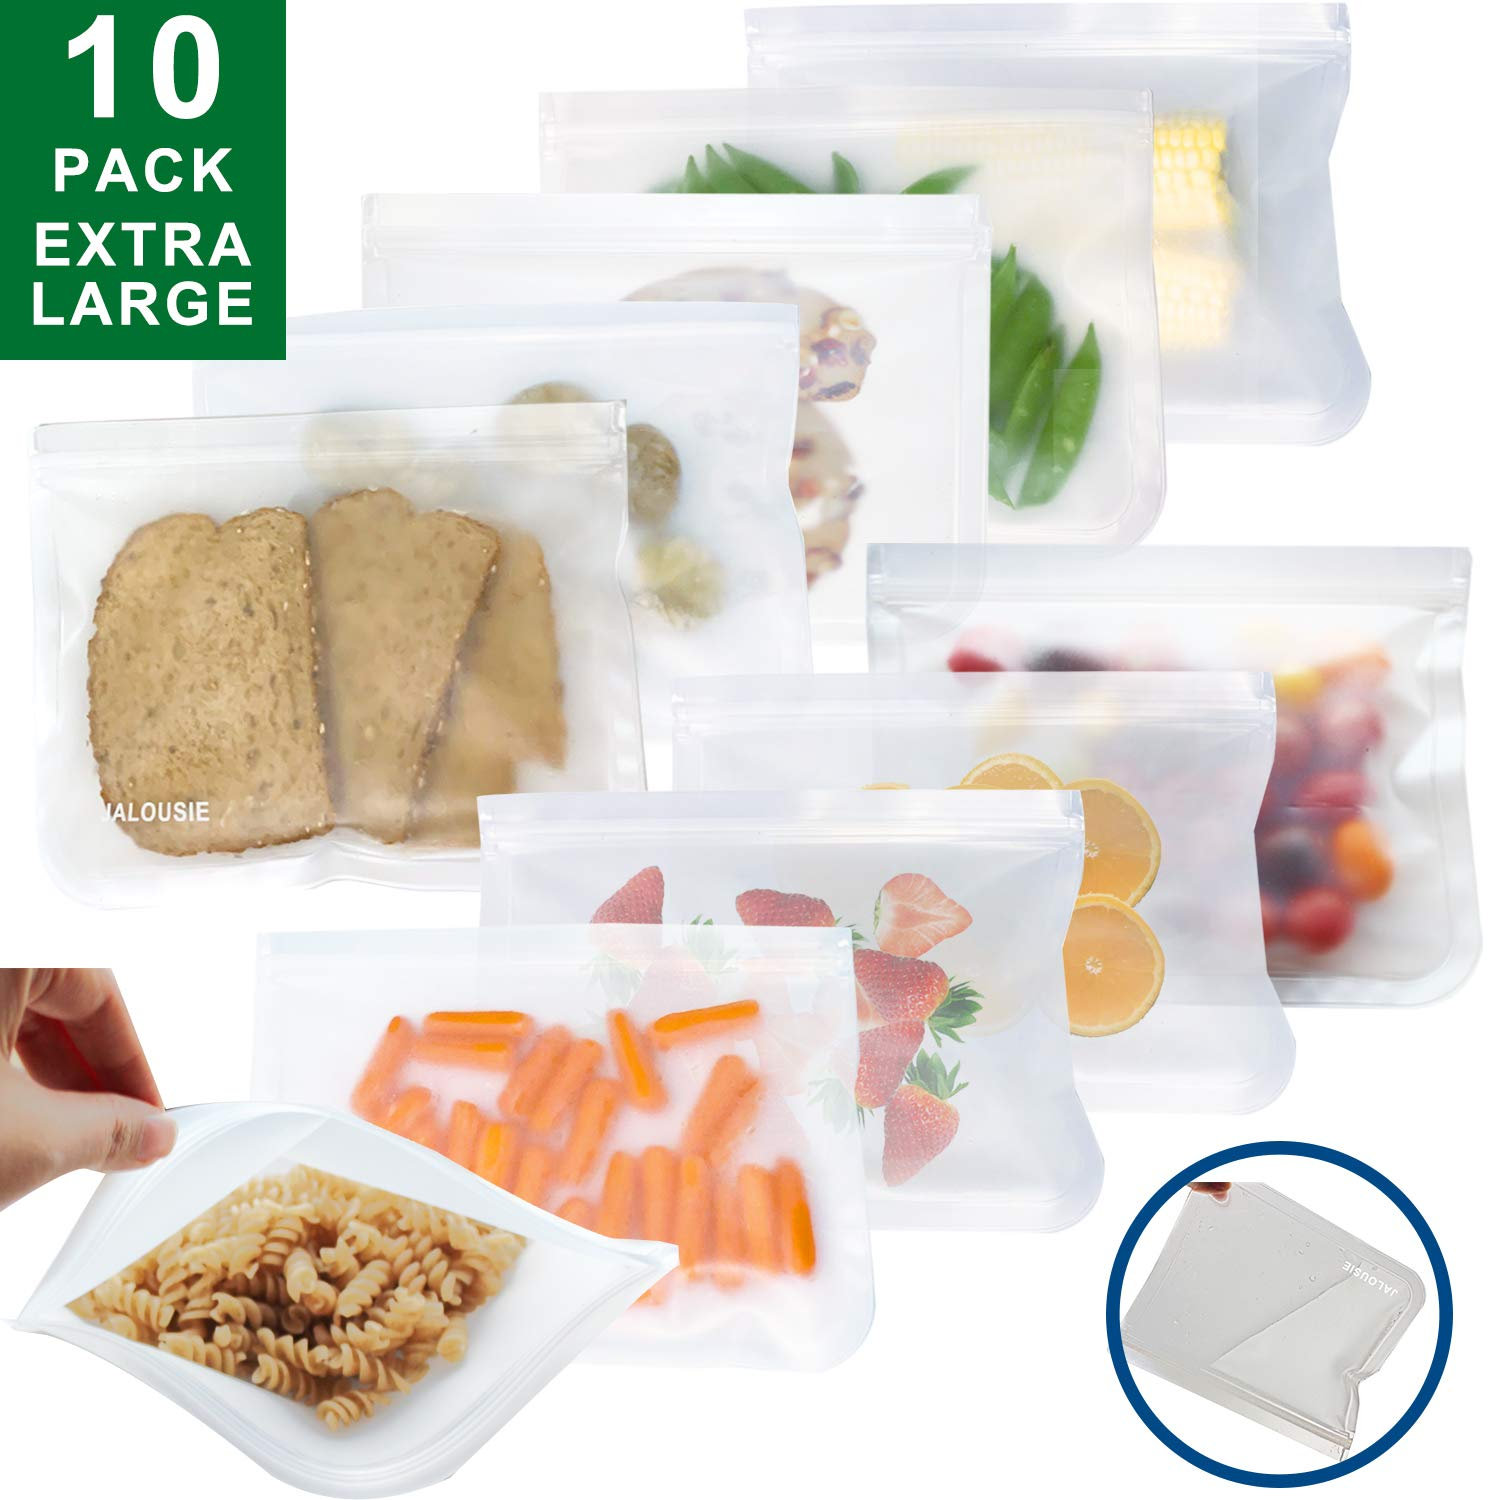 JALOUSIE 10 PACK (10 inch X 8 inch XL) BPA-free PEVA Food Grade Reusable Storage Bags (10 Pack) Extra Thick Zipper Bag for Snacks, sandwiches, stationery, clear toiletry zip bag (10 Pack Extra Large)